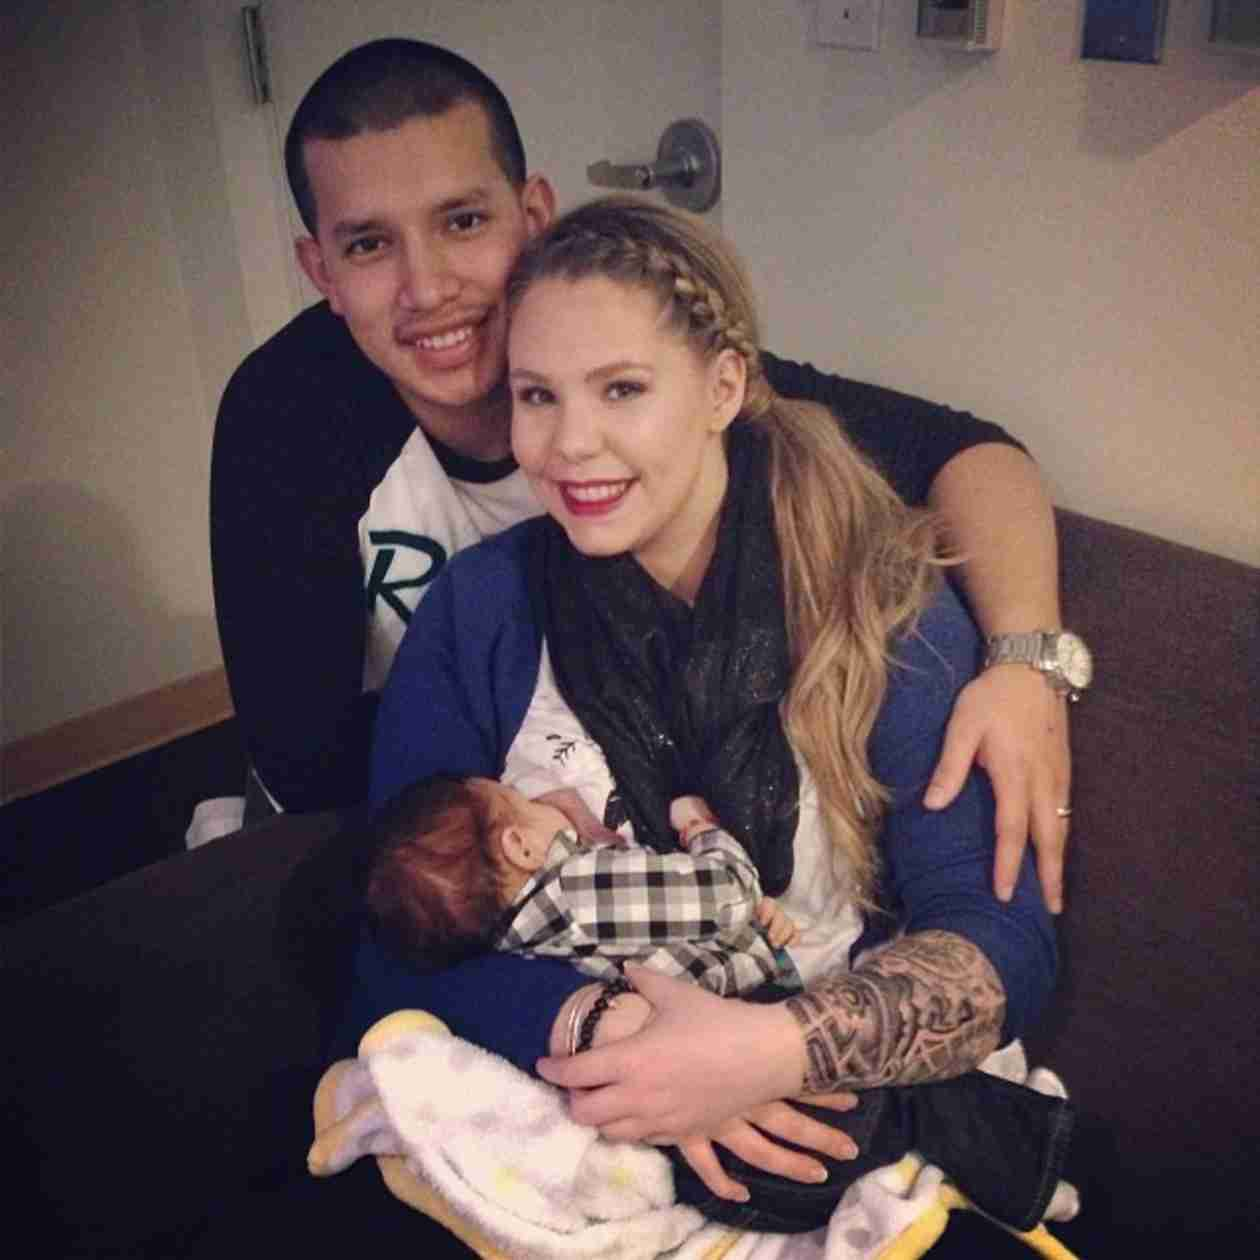 Teen Mom 2: Where Did Javi Marroquin Propose to Kailyn Lowry?